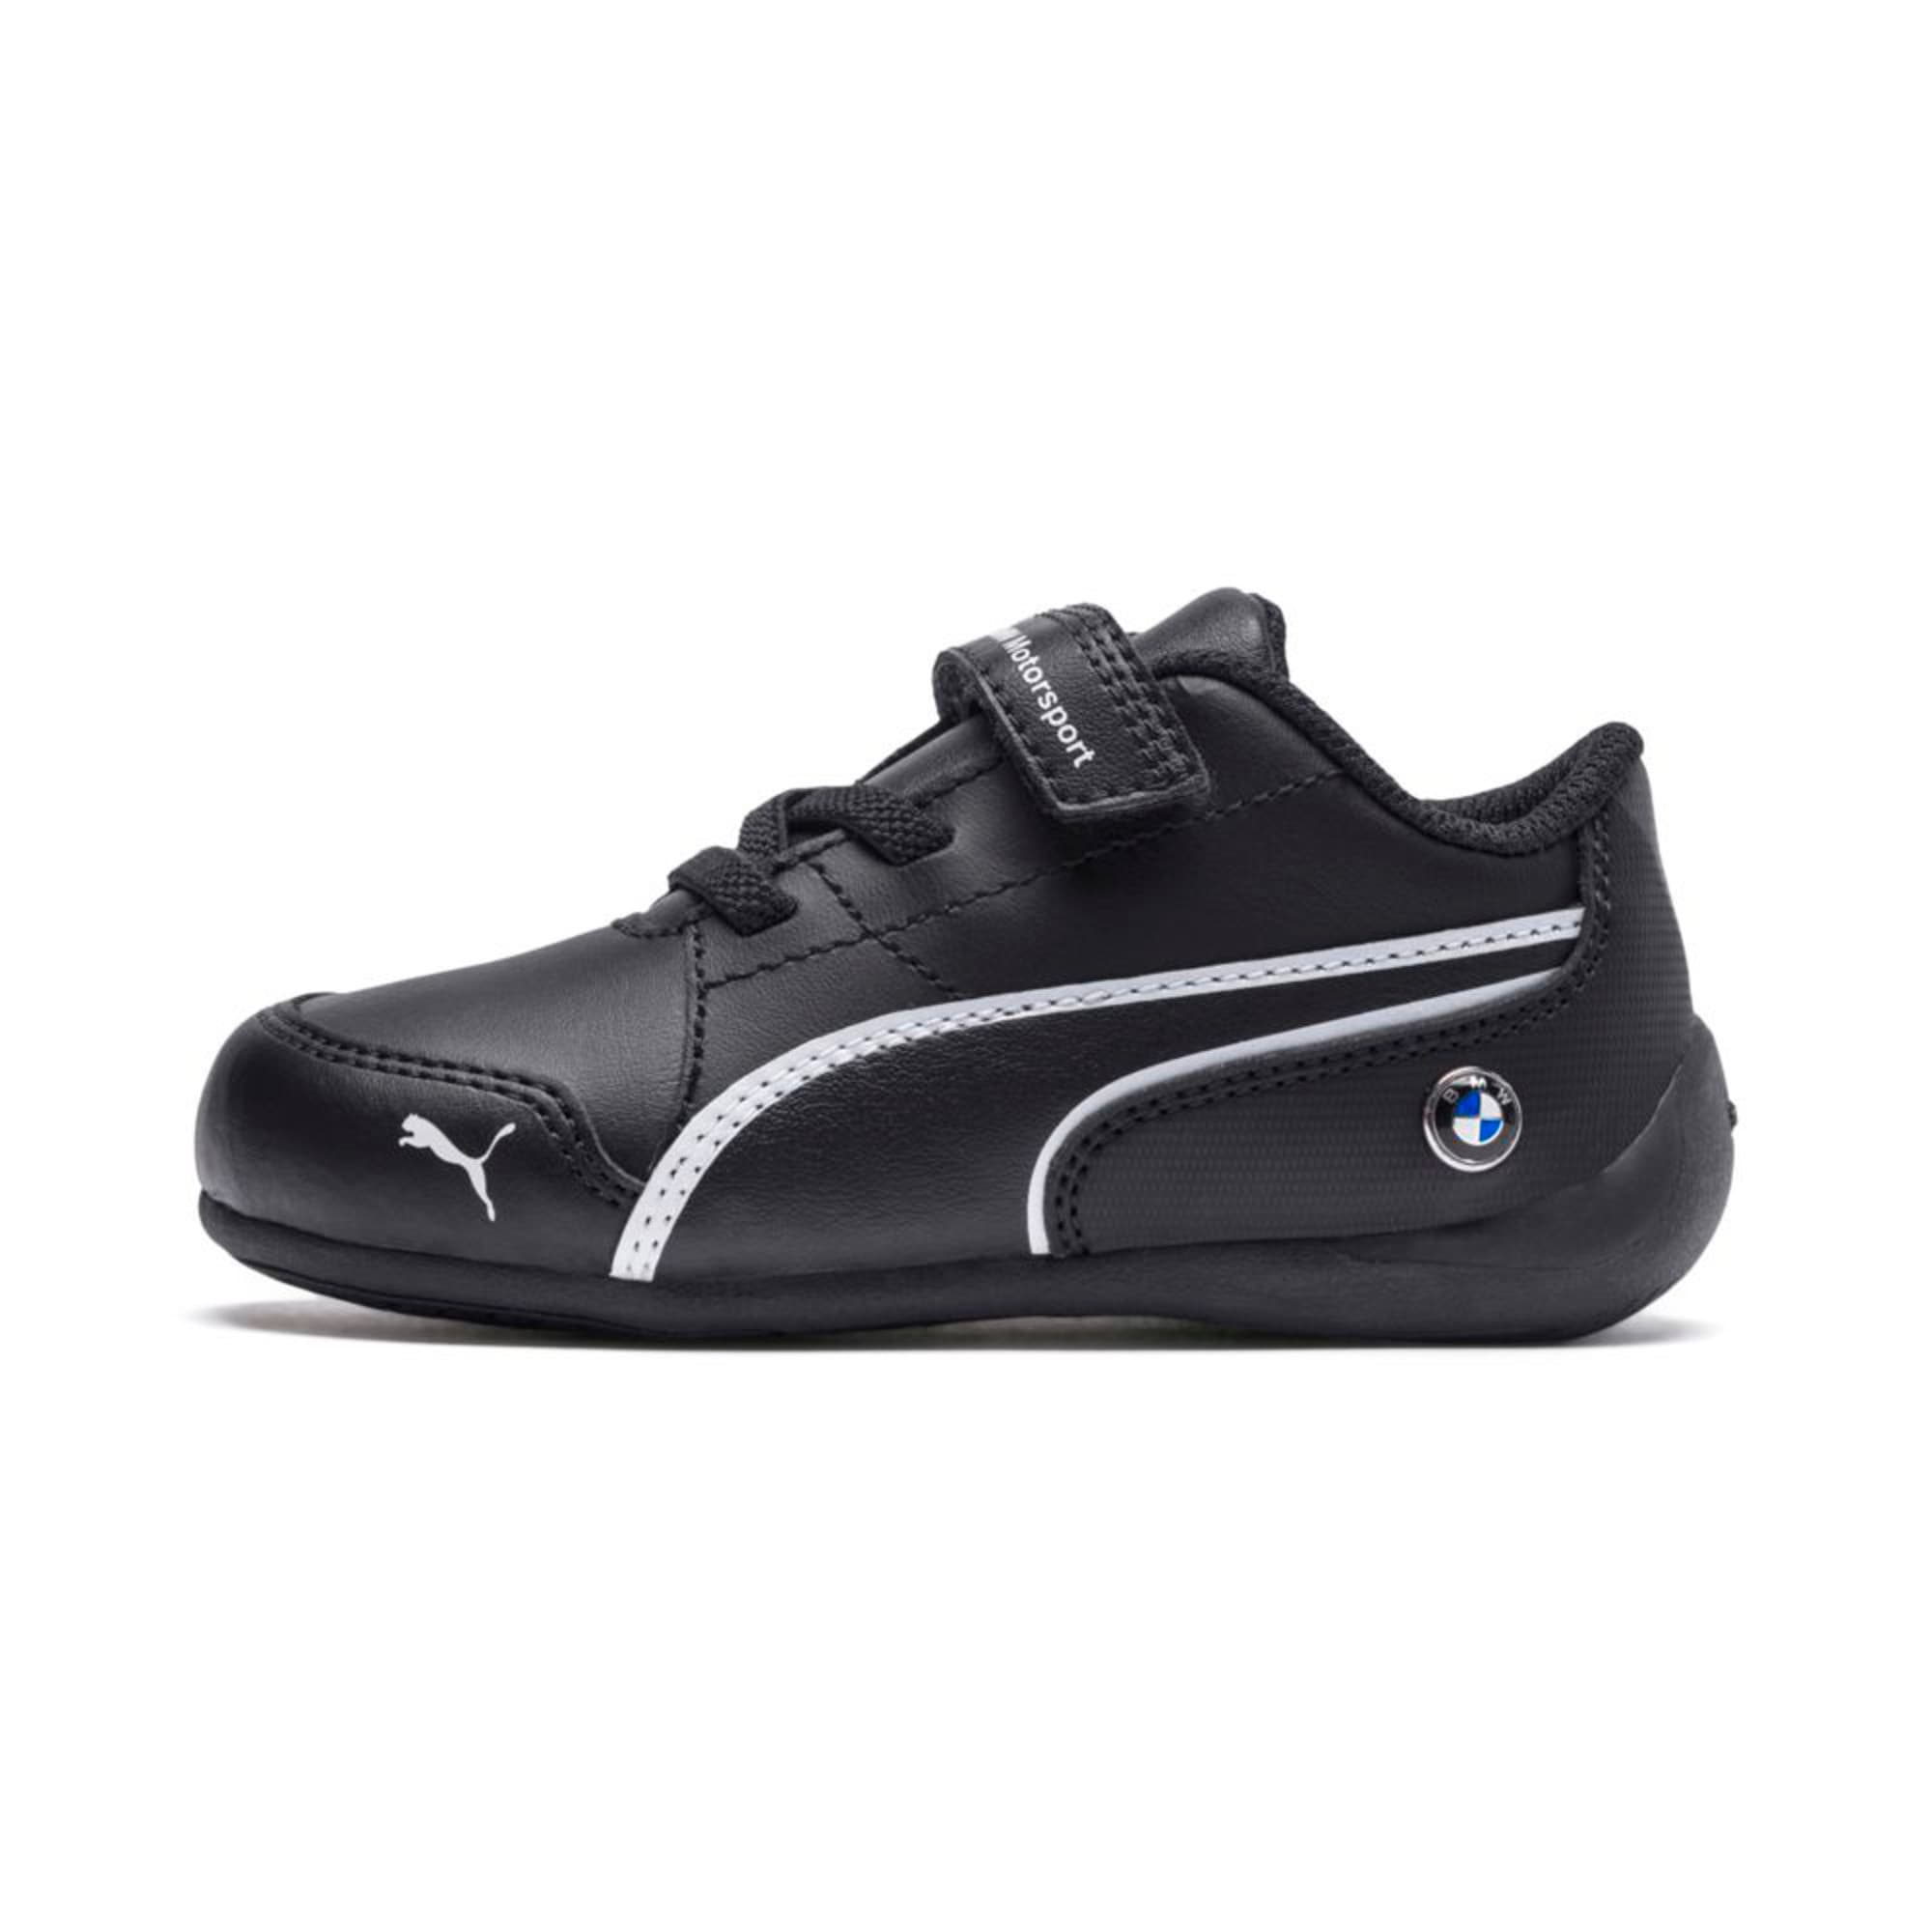 Thumbnail 1 of BMW Motorsport Drift Cat 7 V Preschool Kids' Trainers, Anthracite-Anthracite, medium-IND